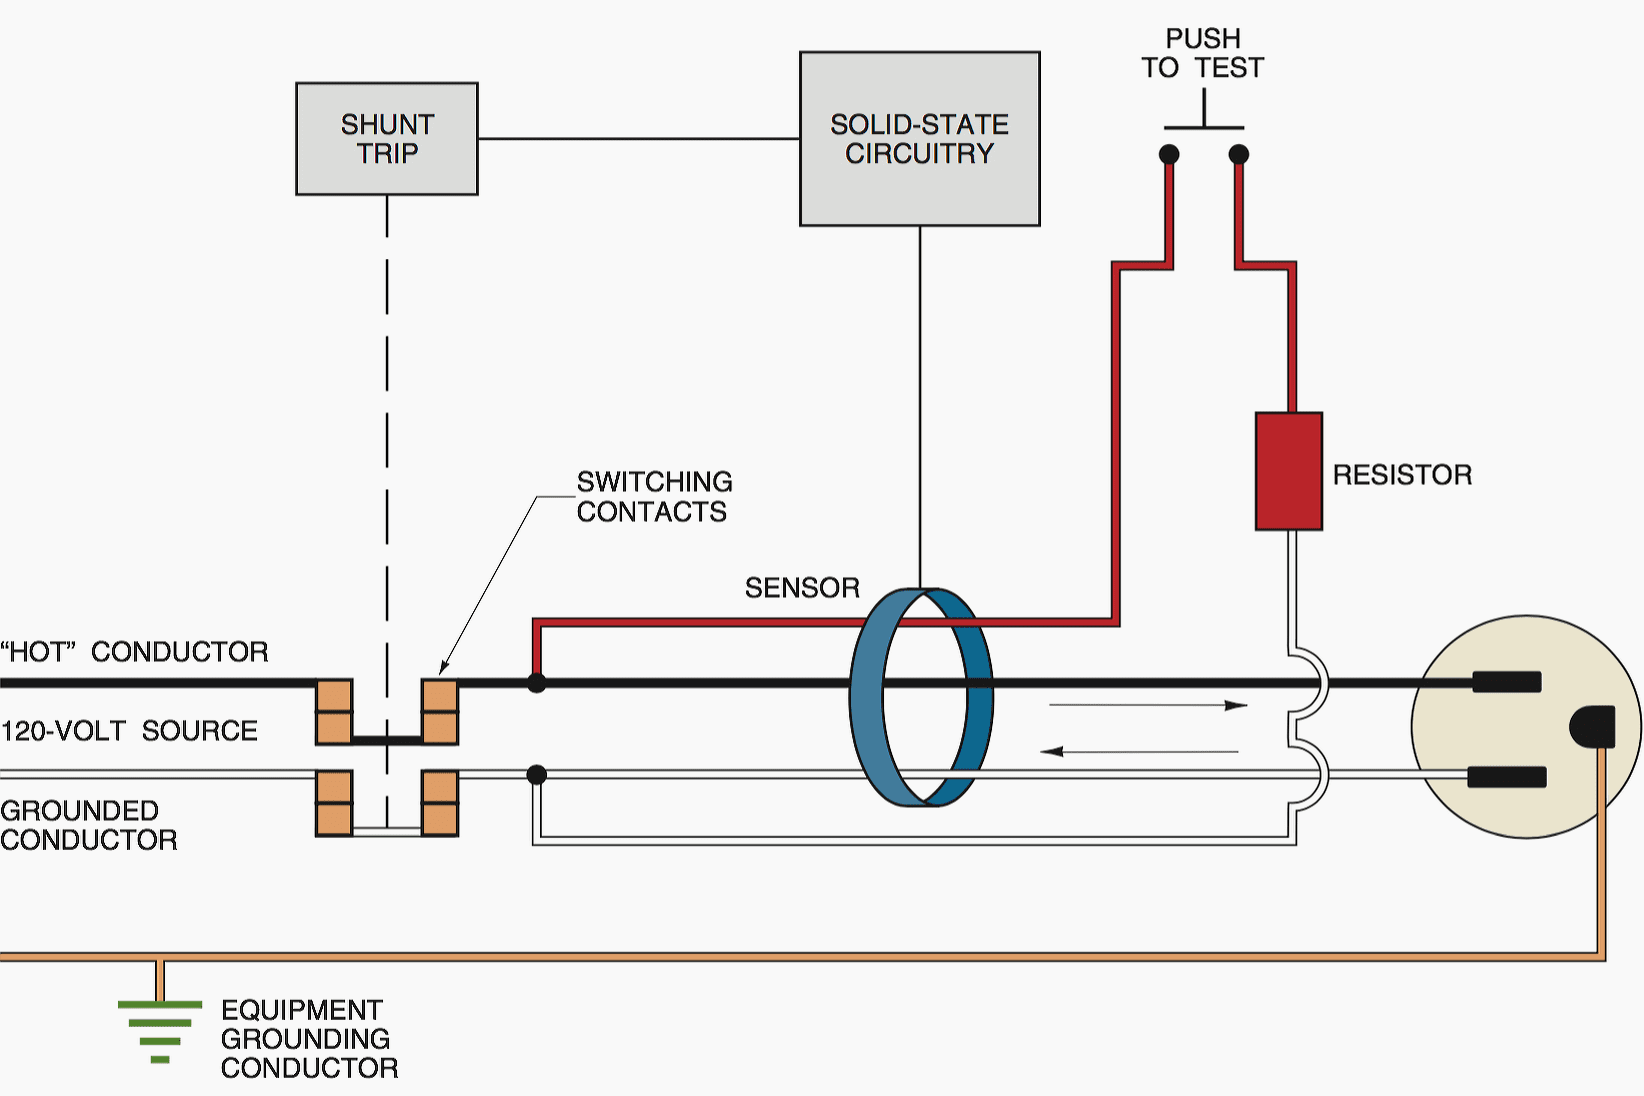 hight resolution of ground fault circuit interrupter internal components and connections